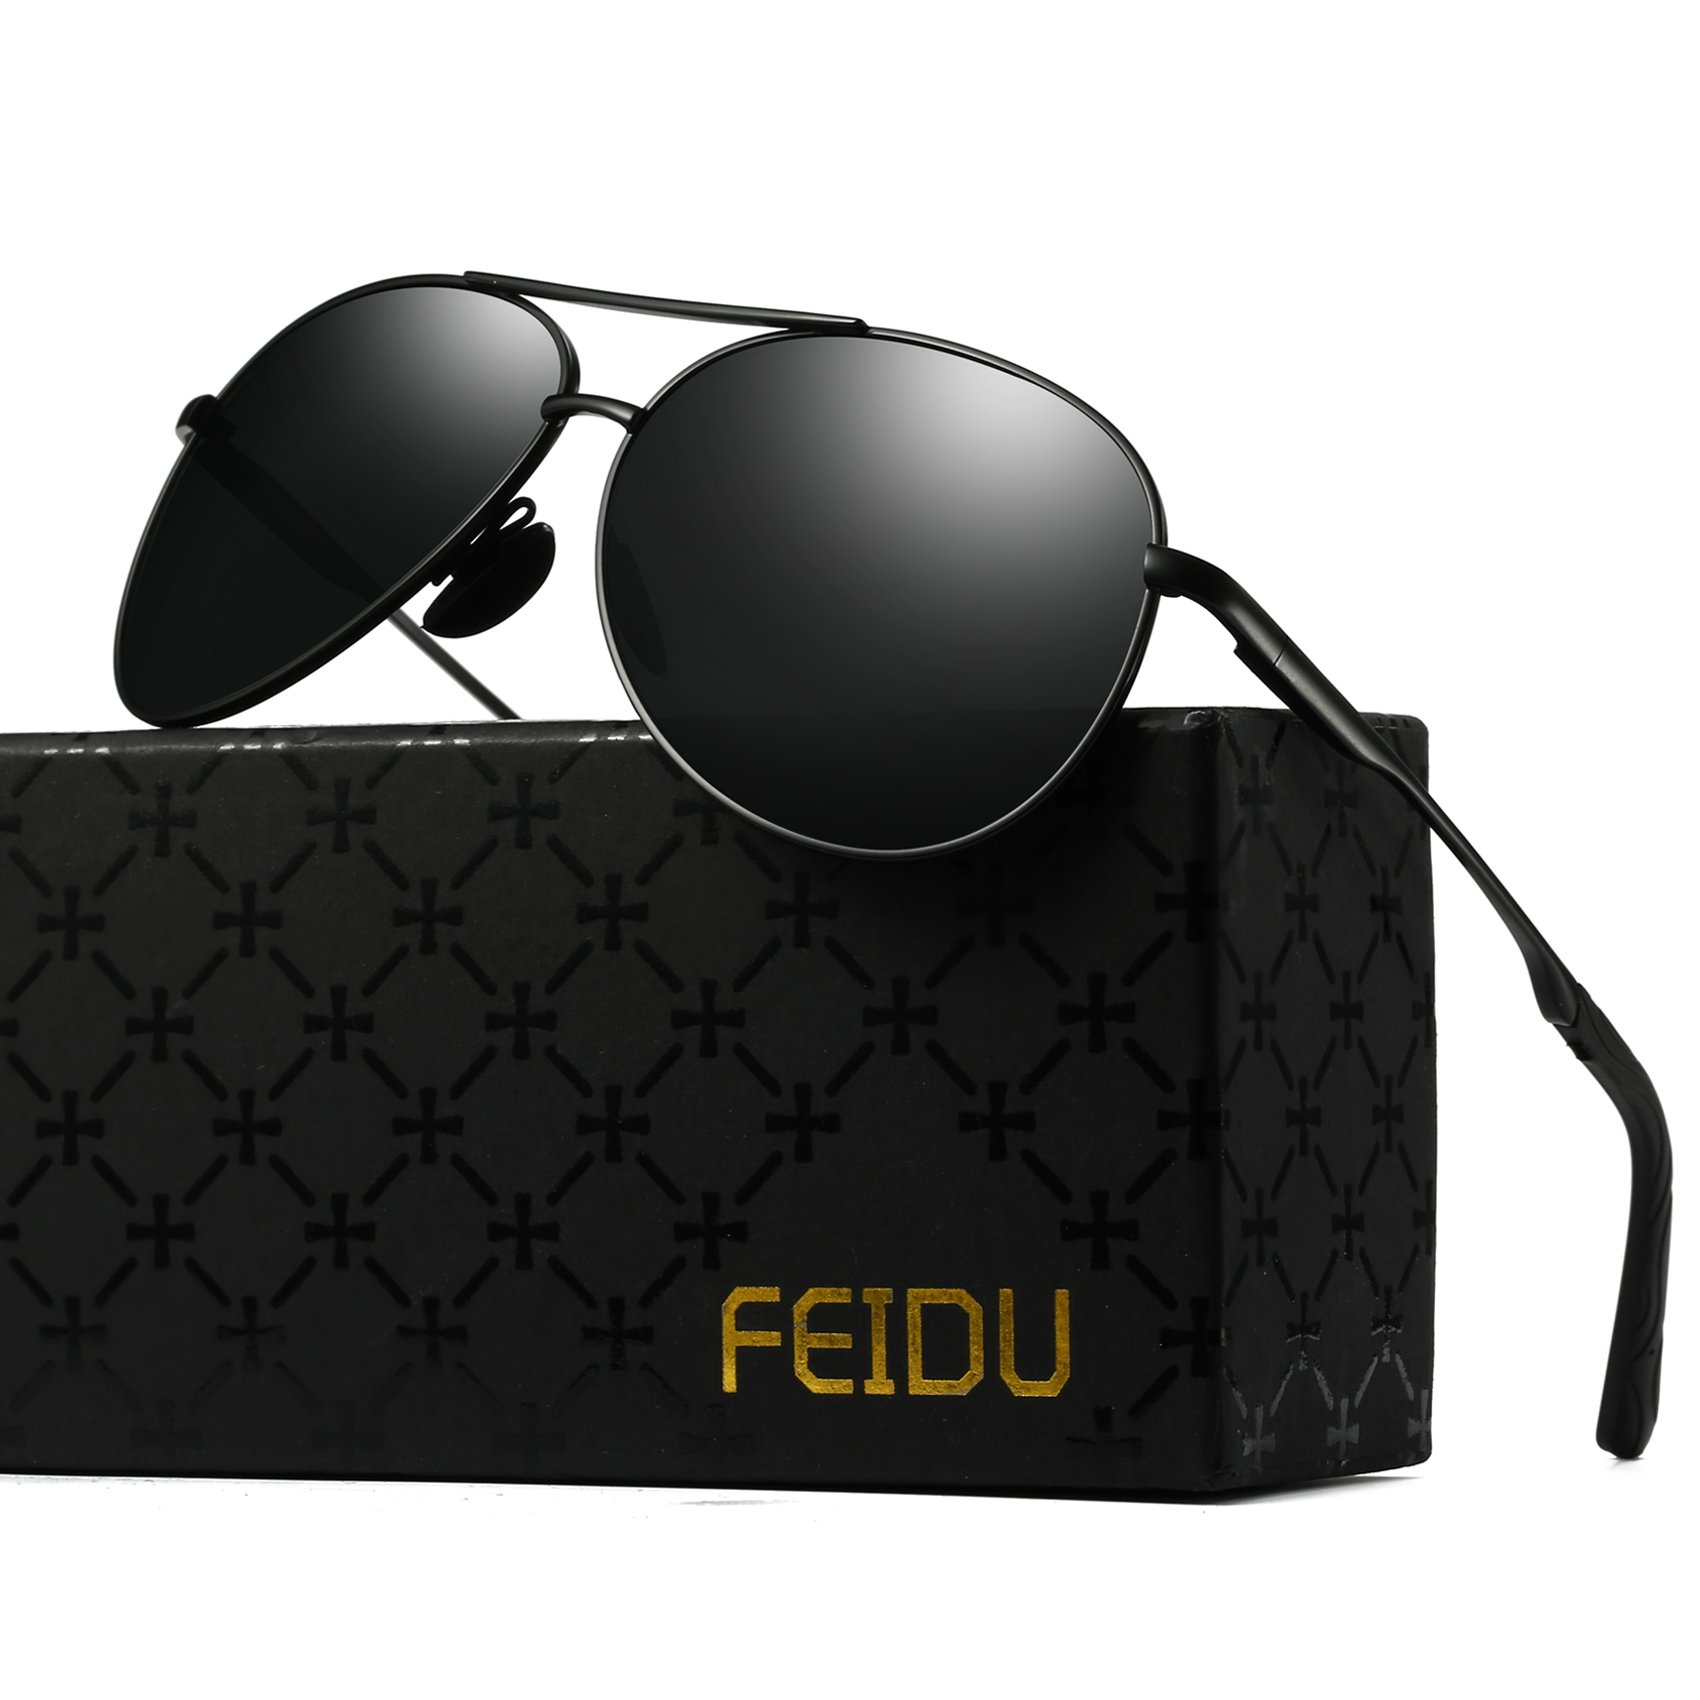 Polarized Aviator Sunglasses for Men - FEIDU Driving Sunglasses Unisex FD9002 (black/black-9002, 2.28) by FEIDU